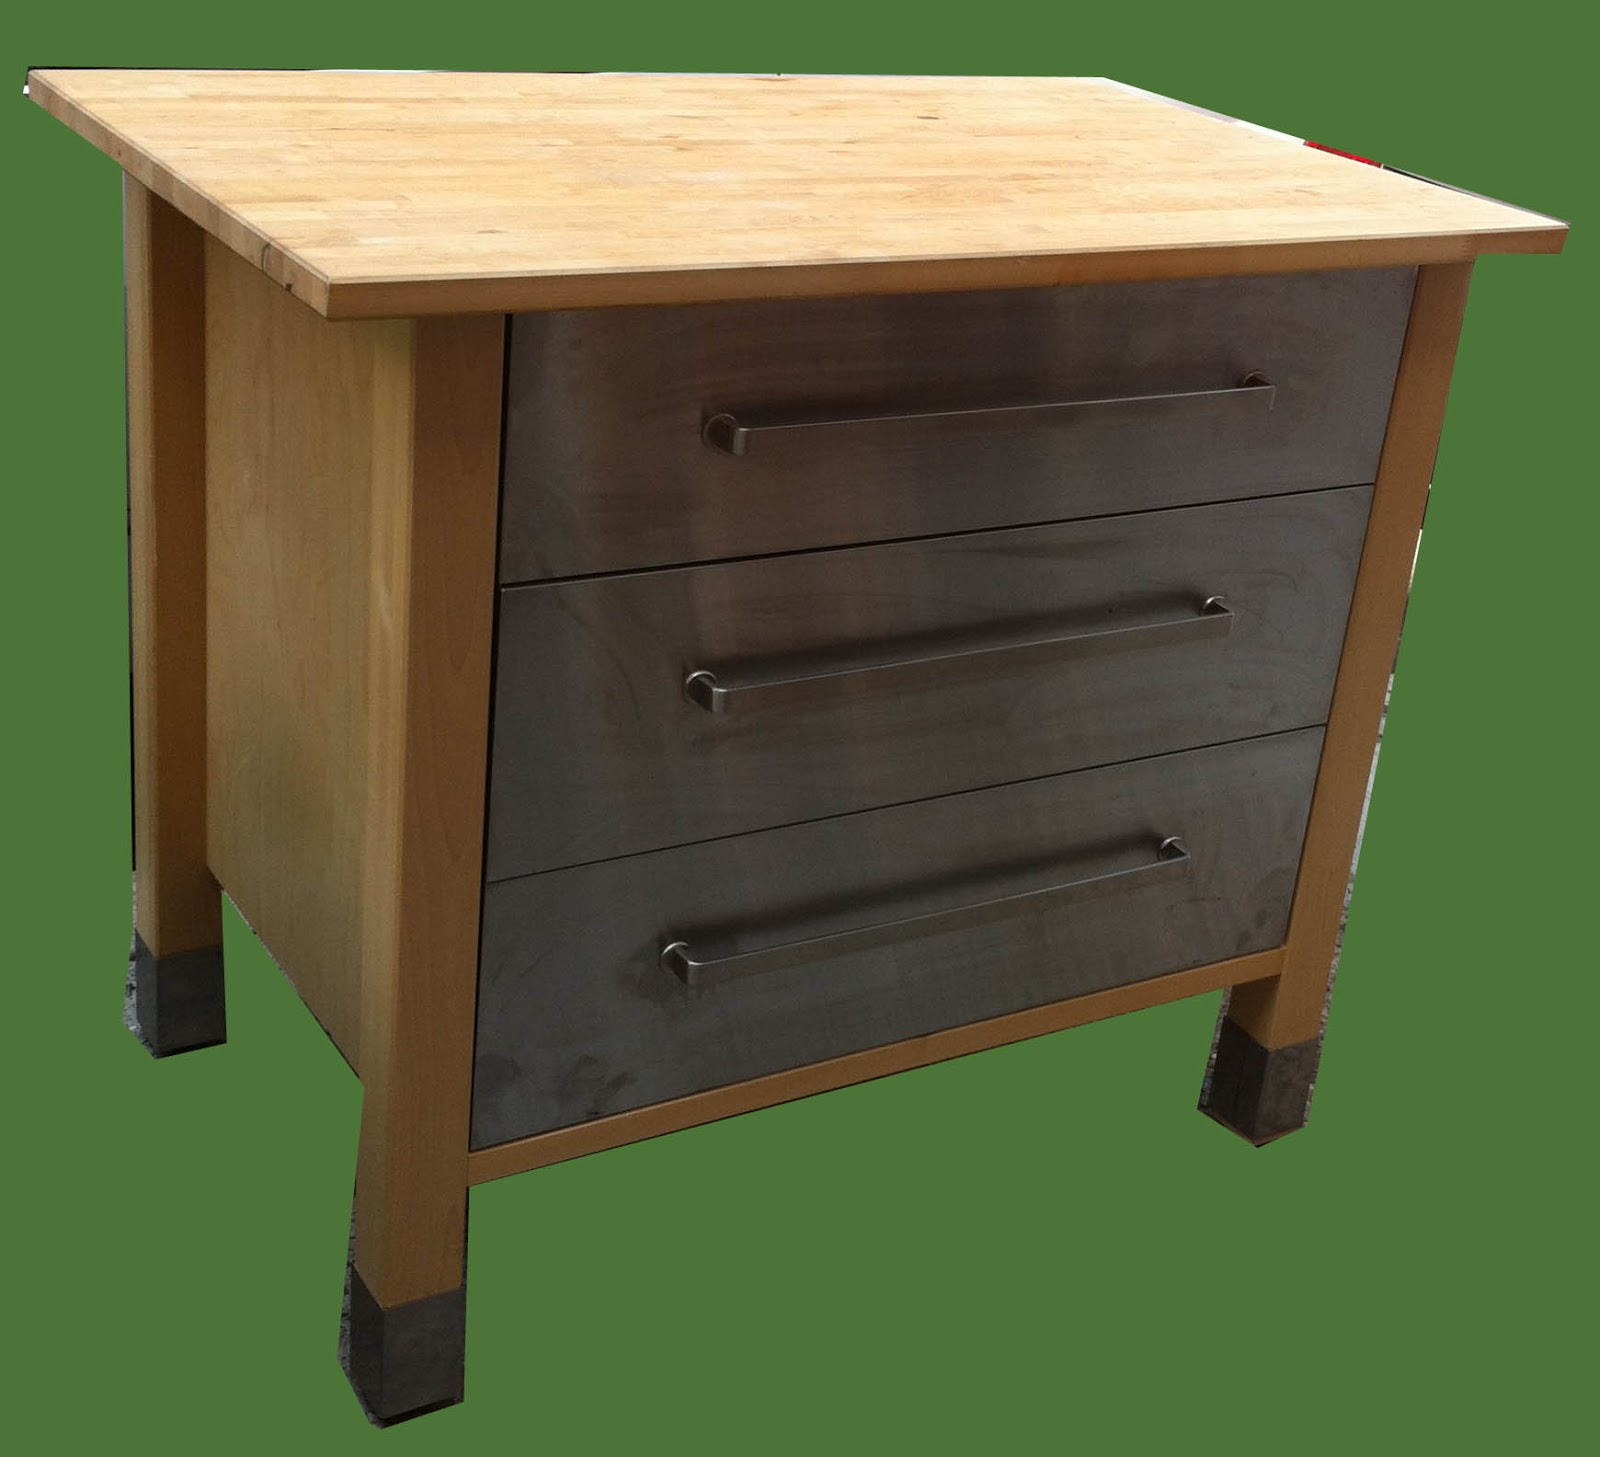 Uhuru furniture collectibles small butcher block - Small butcher block island ...